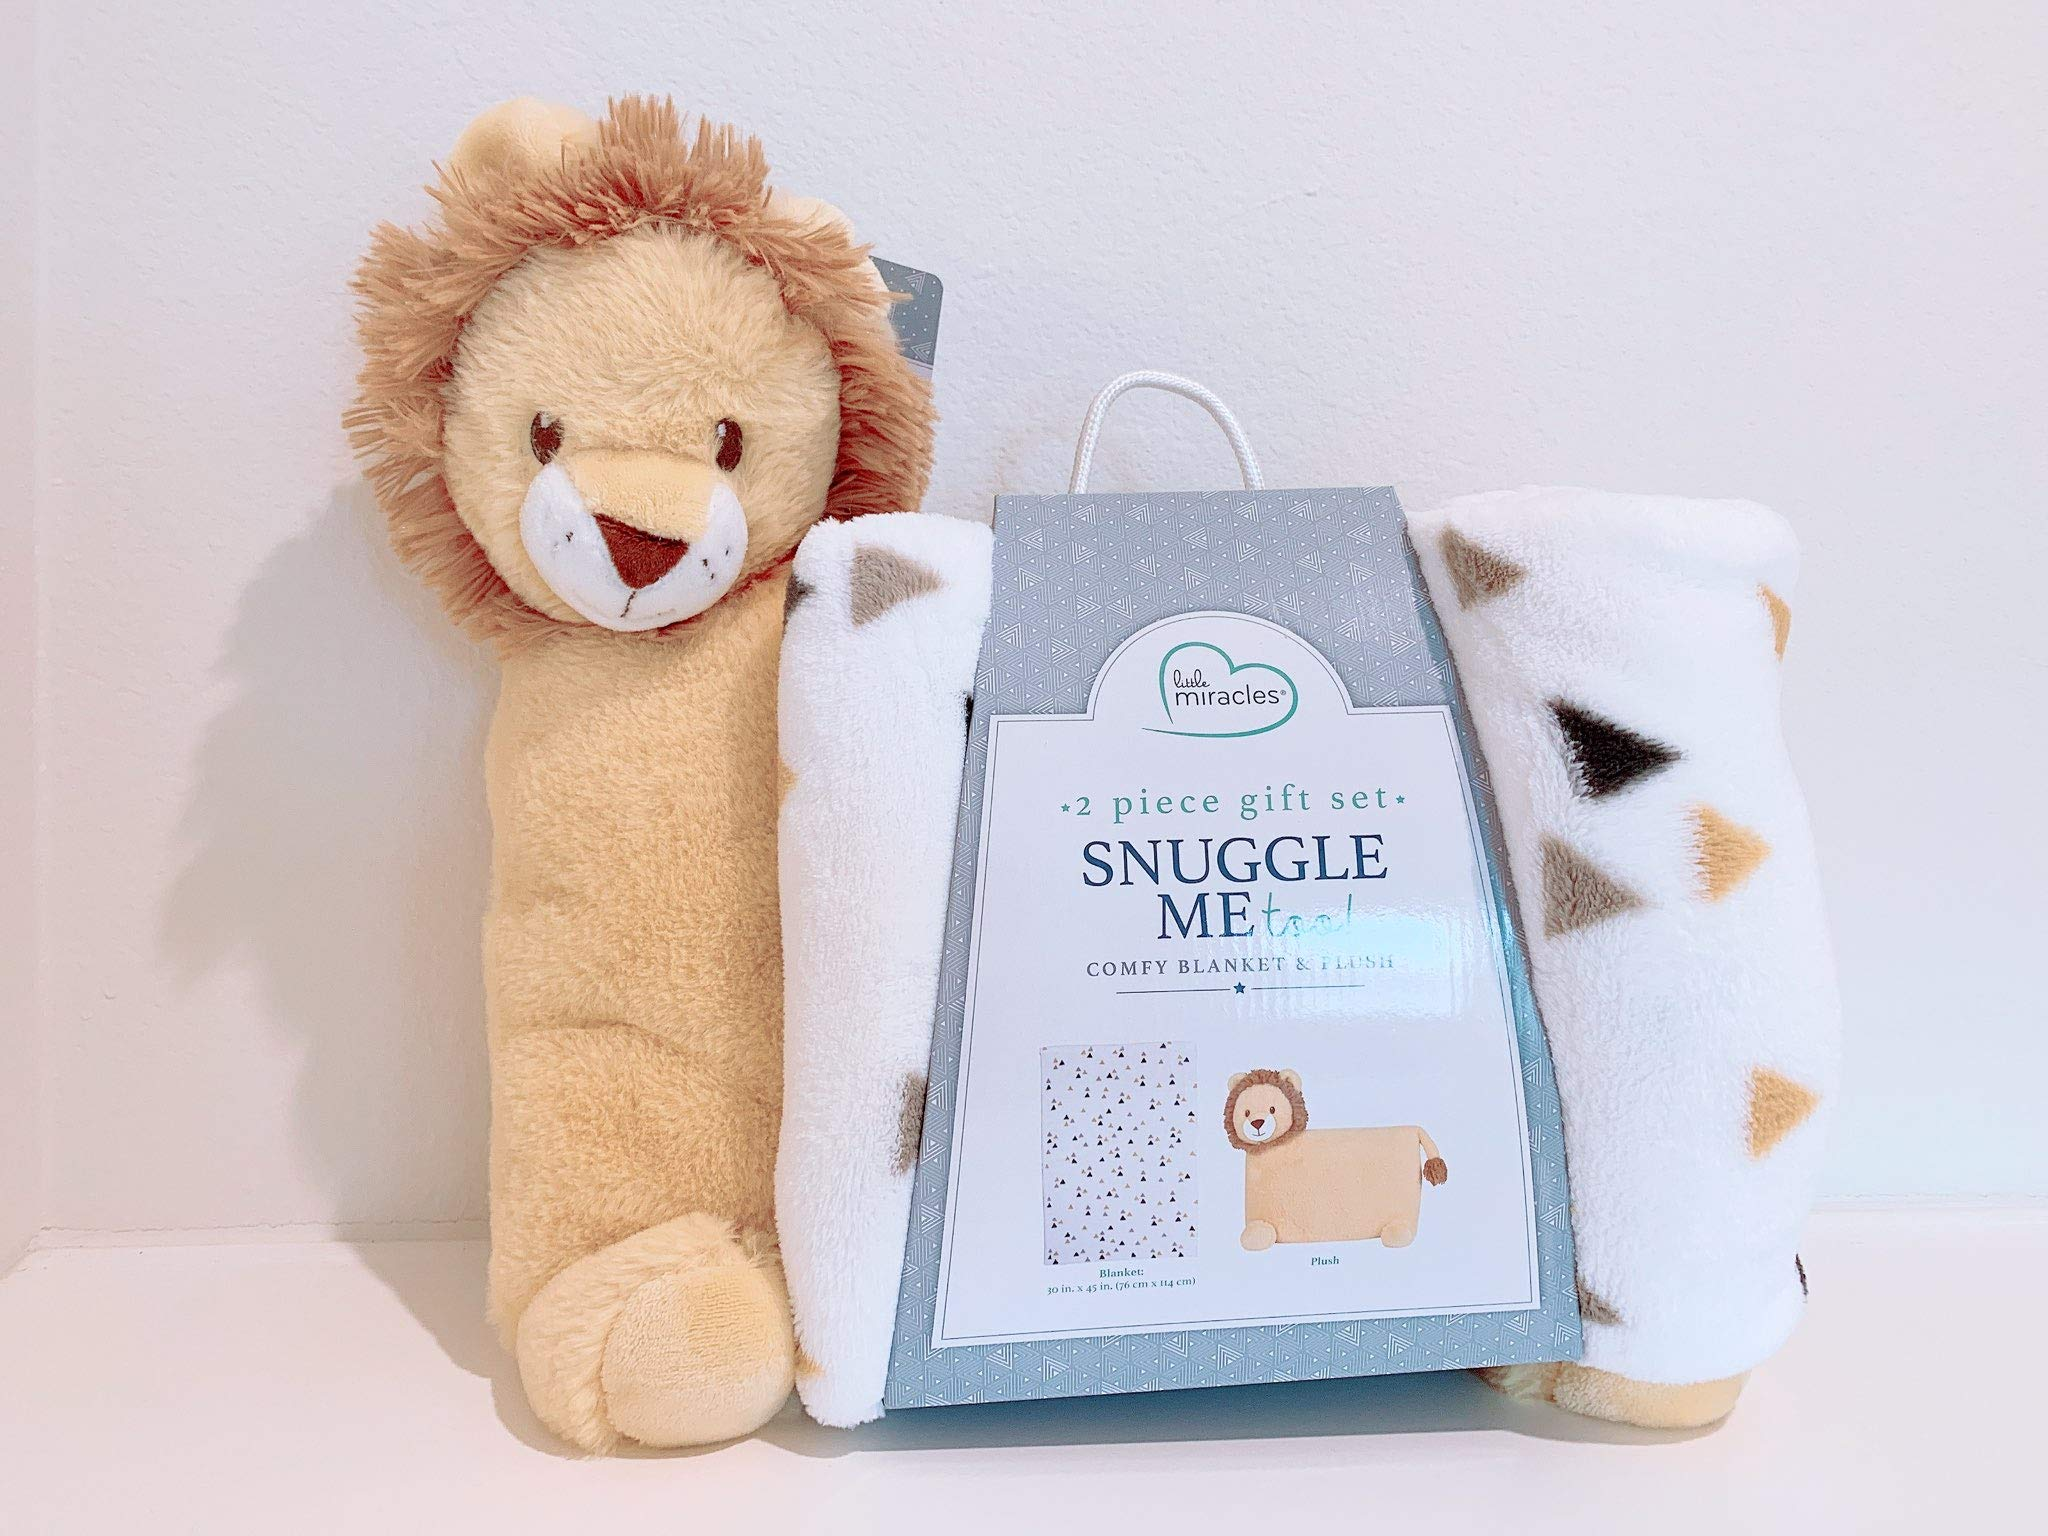 Little Miracles Snuggle Me Too! 2-Piece Comfy Blanket and Plush Gift Set - Lion